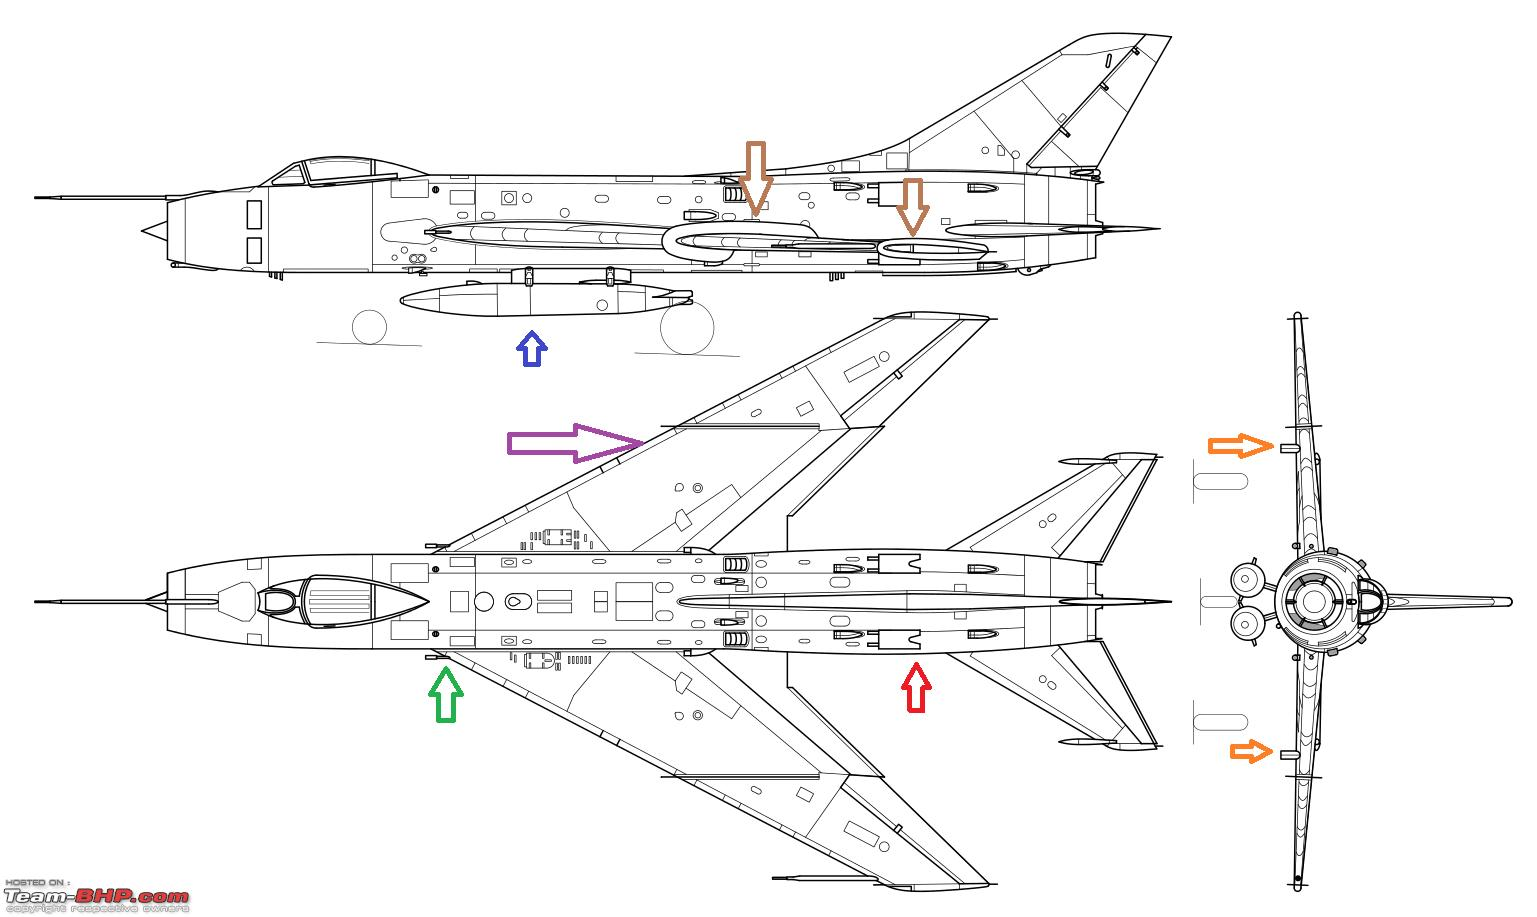 Indian Aviation Hal Hf 24 Marut The First Jet Fighter F18 Engine Diagram 3